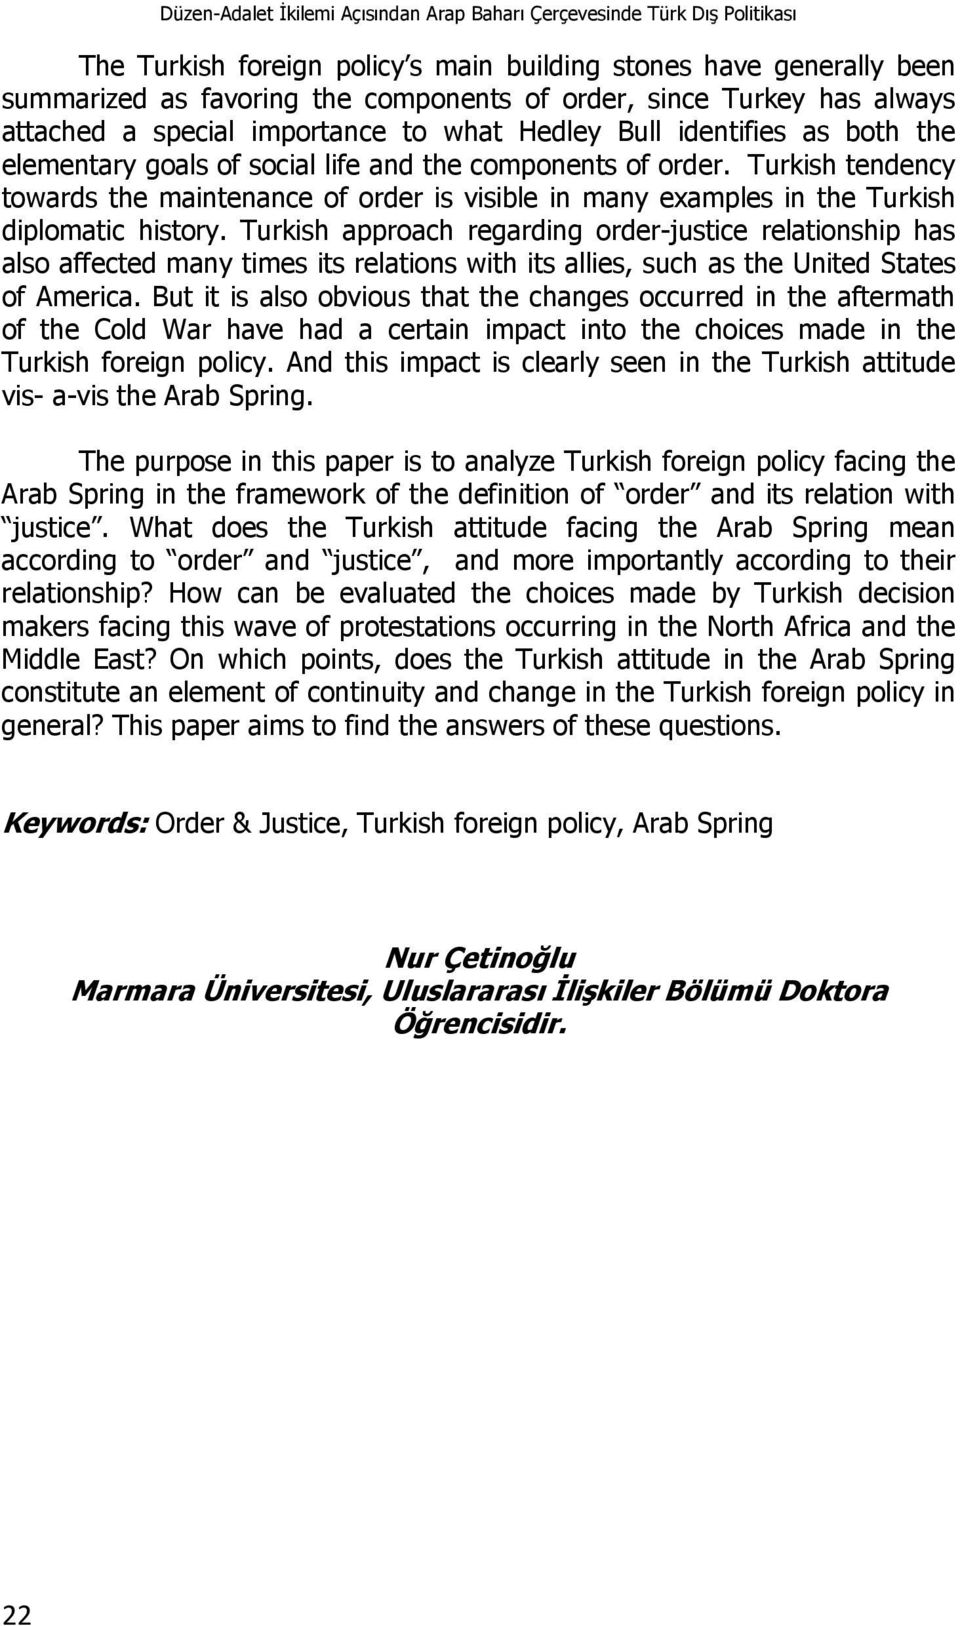 Turkish tendency towards the maintenance of order is visible in many examples in the Turkish diplomatic history.